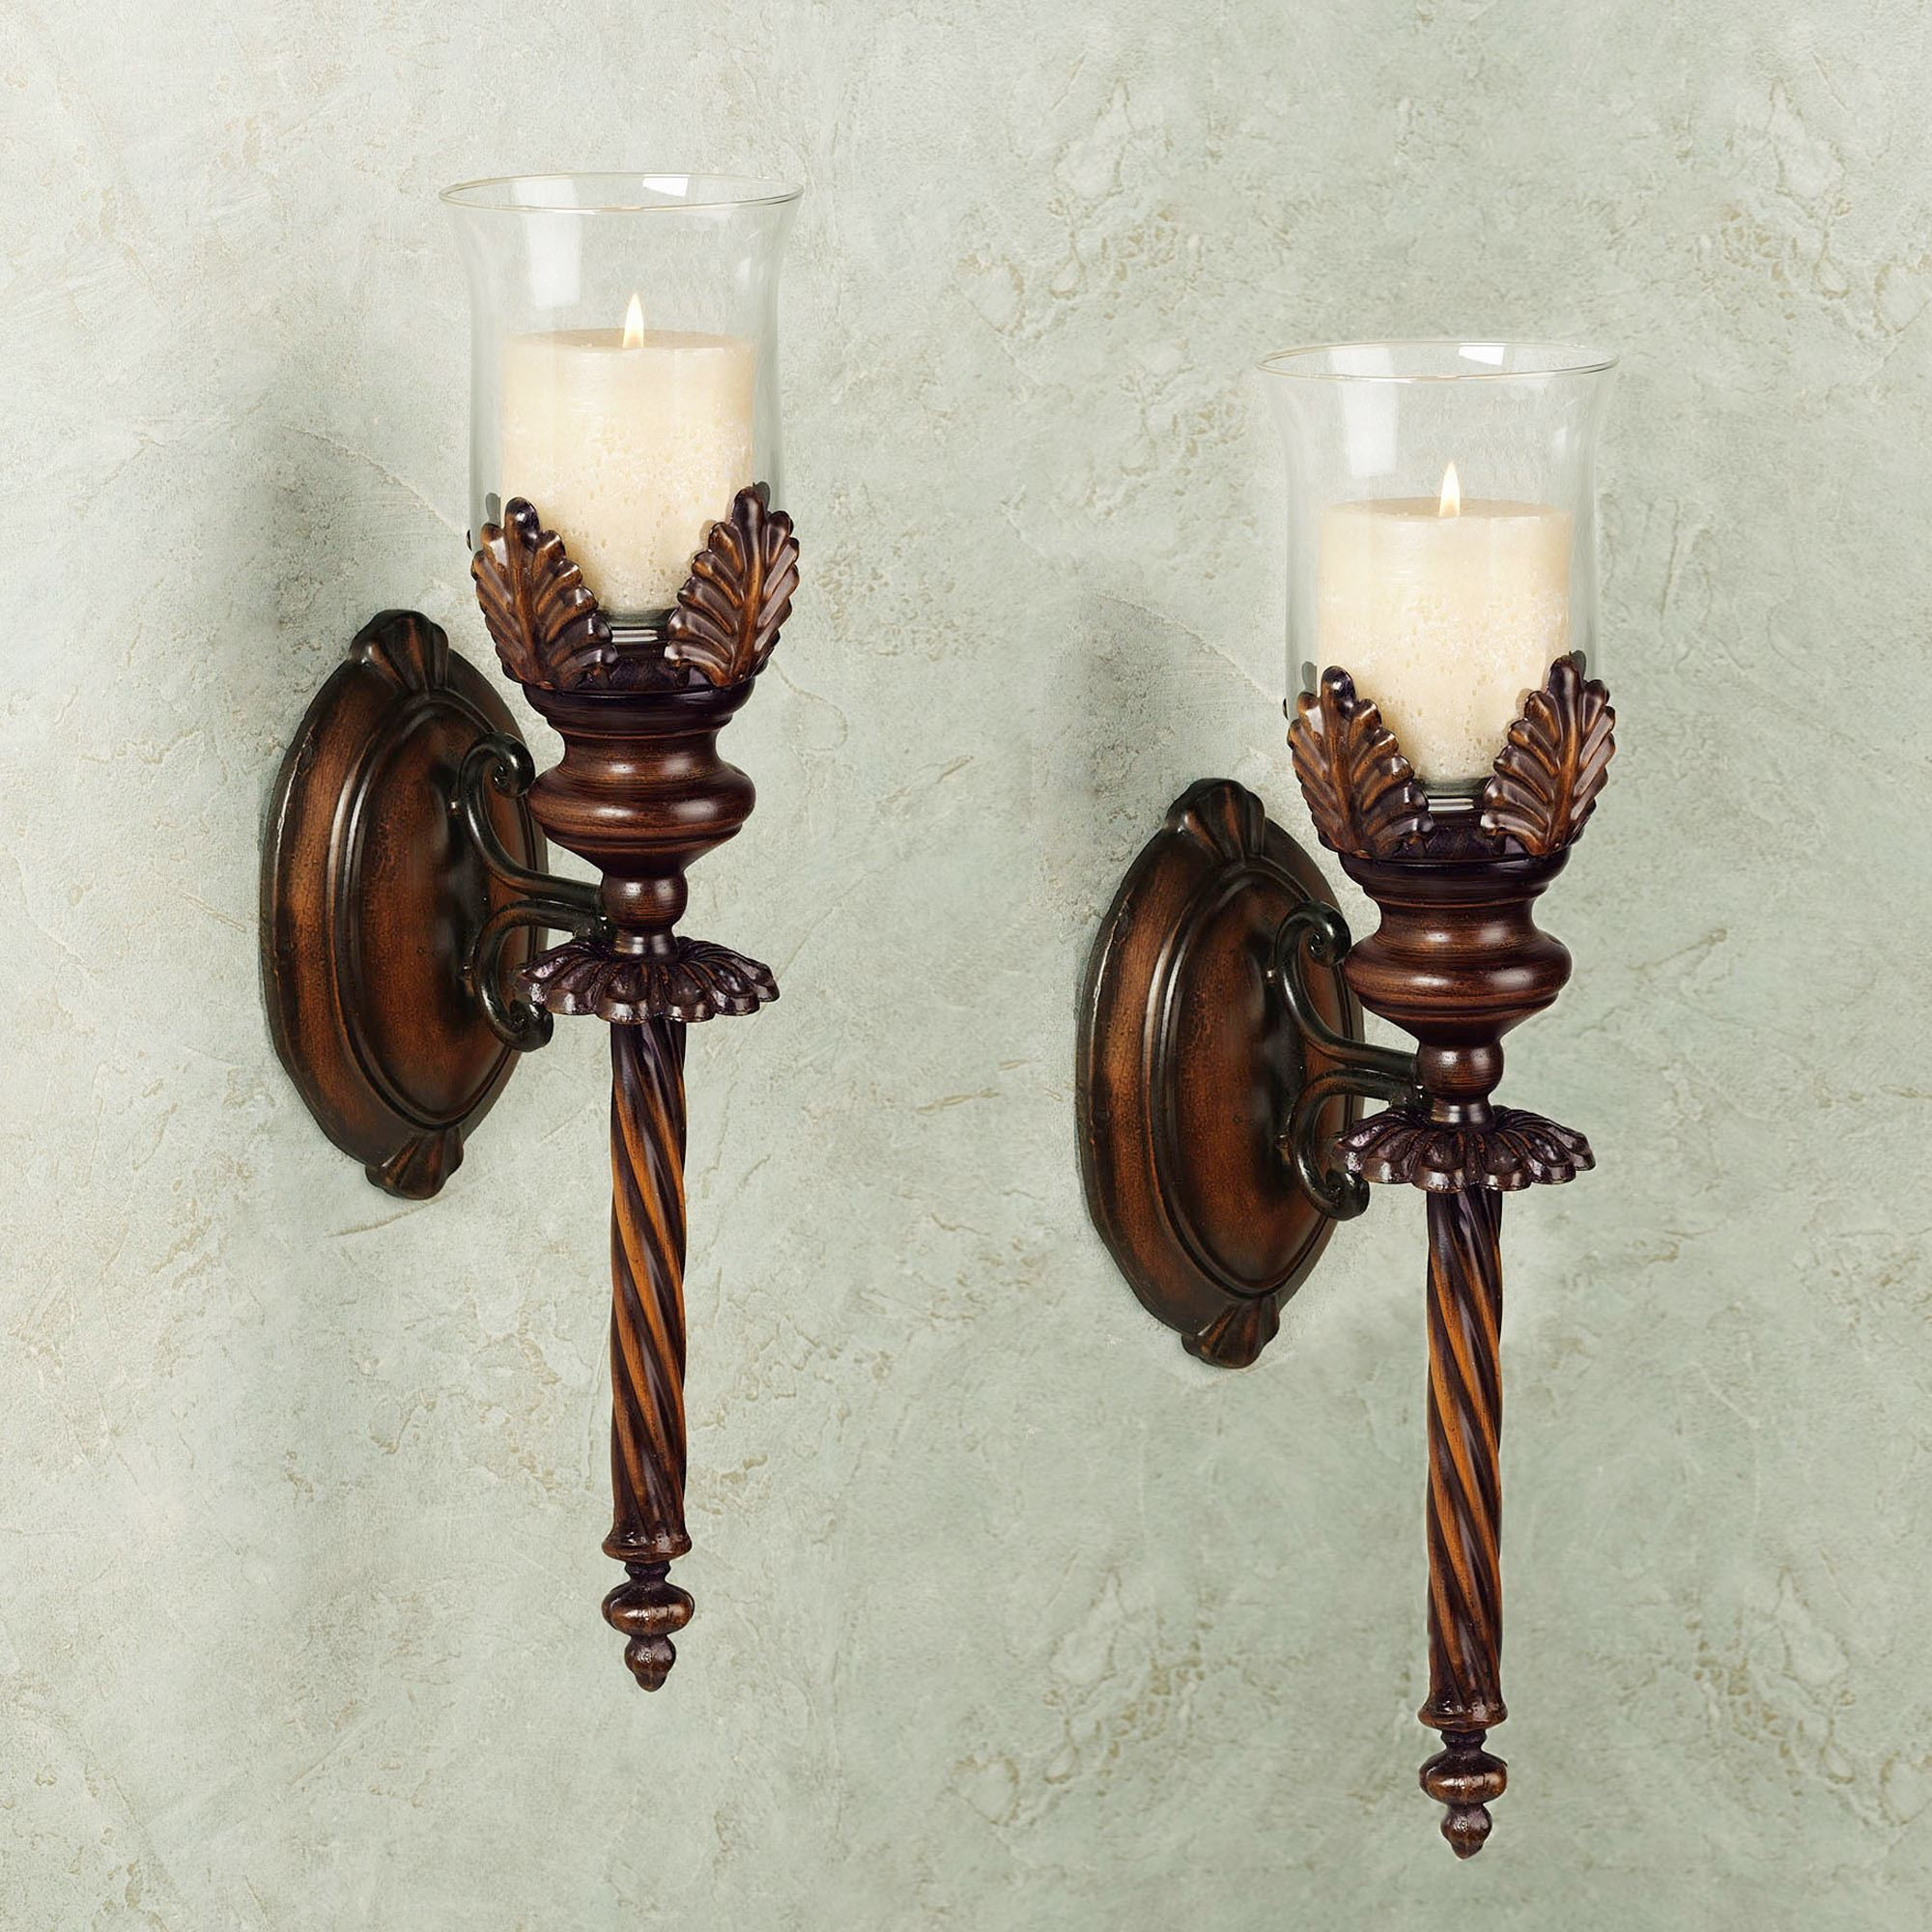 Wall sconces wall candleholders and wall candelabras touch of emmerson wall sconce pair amipublicfo Image collections